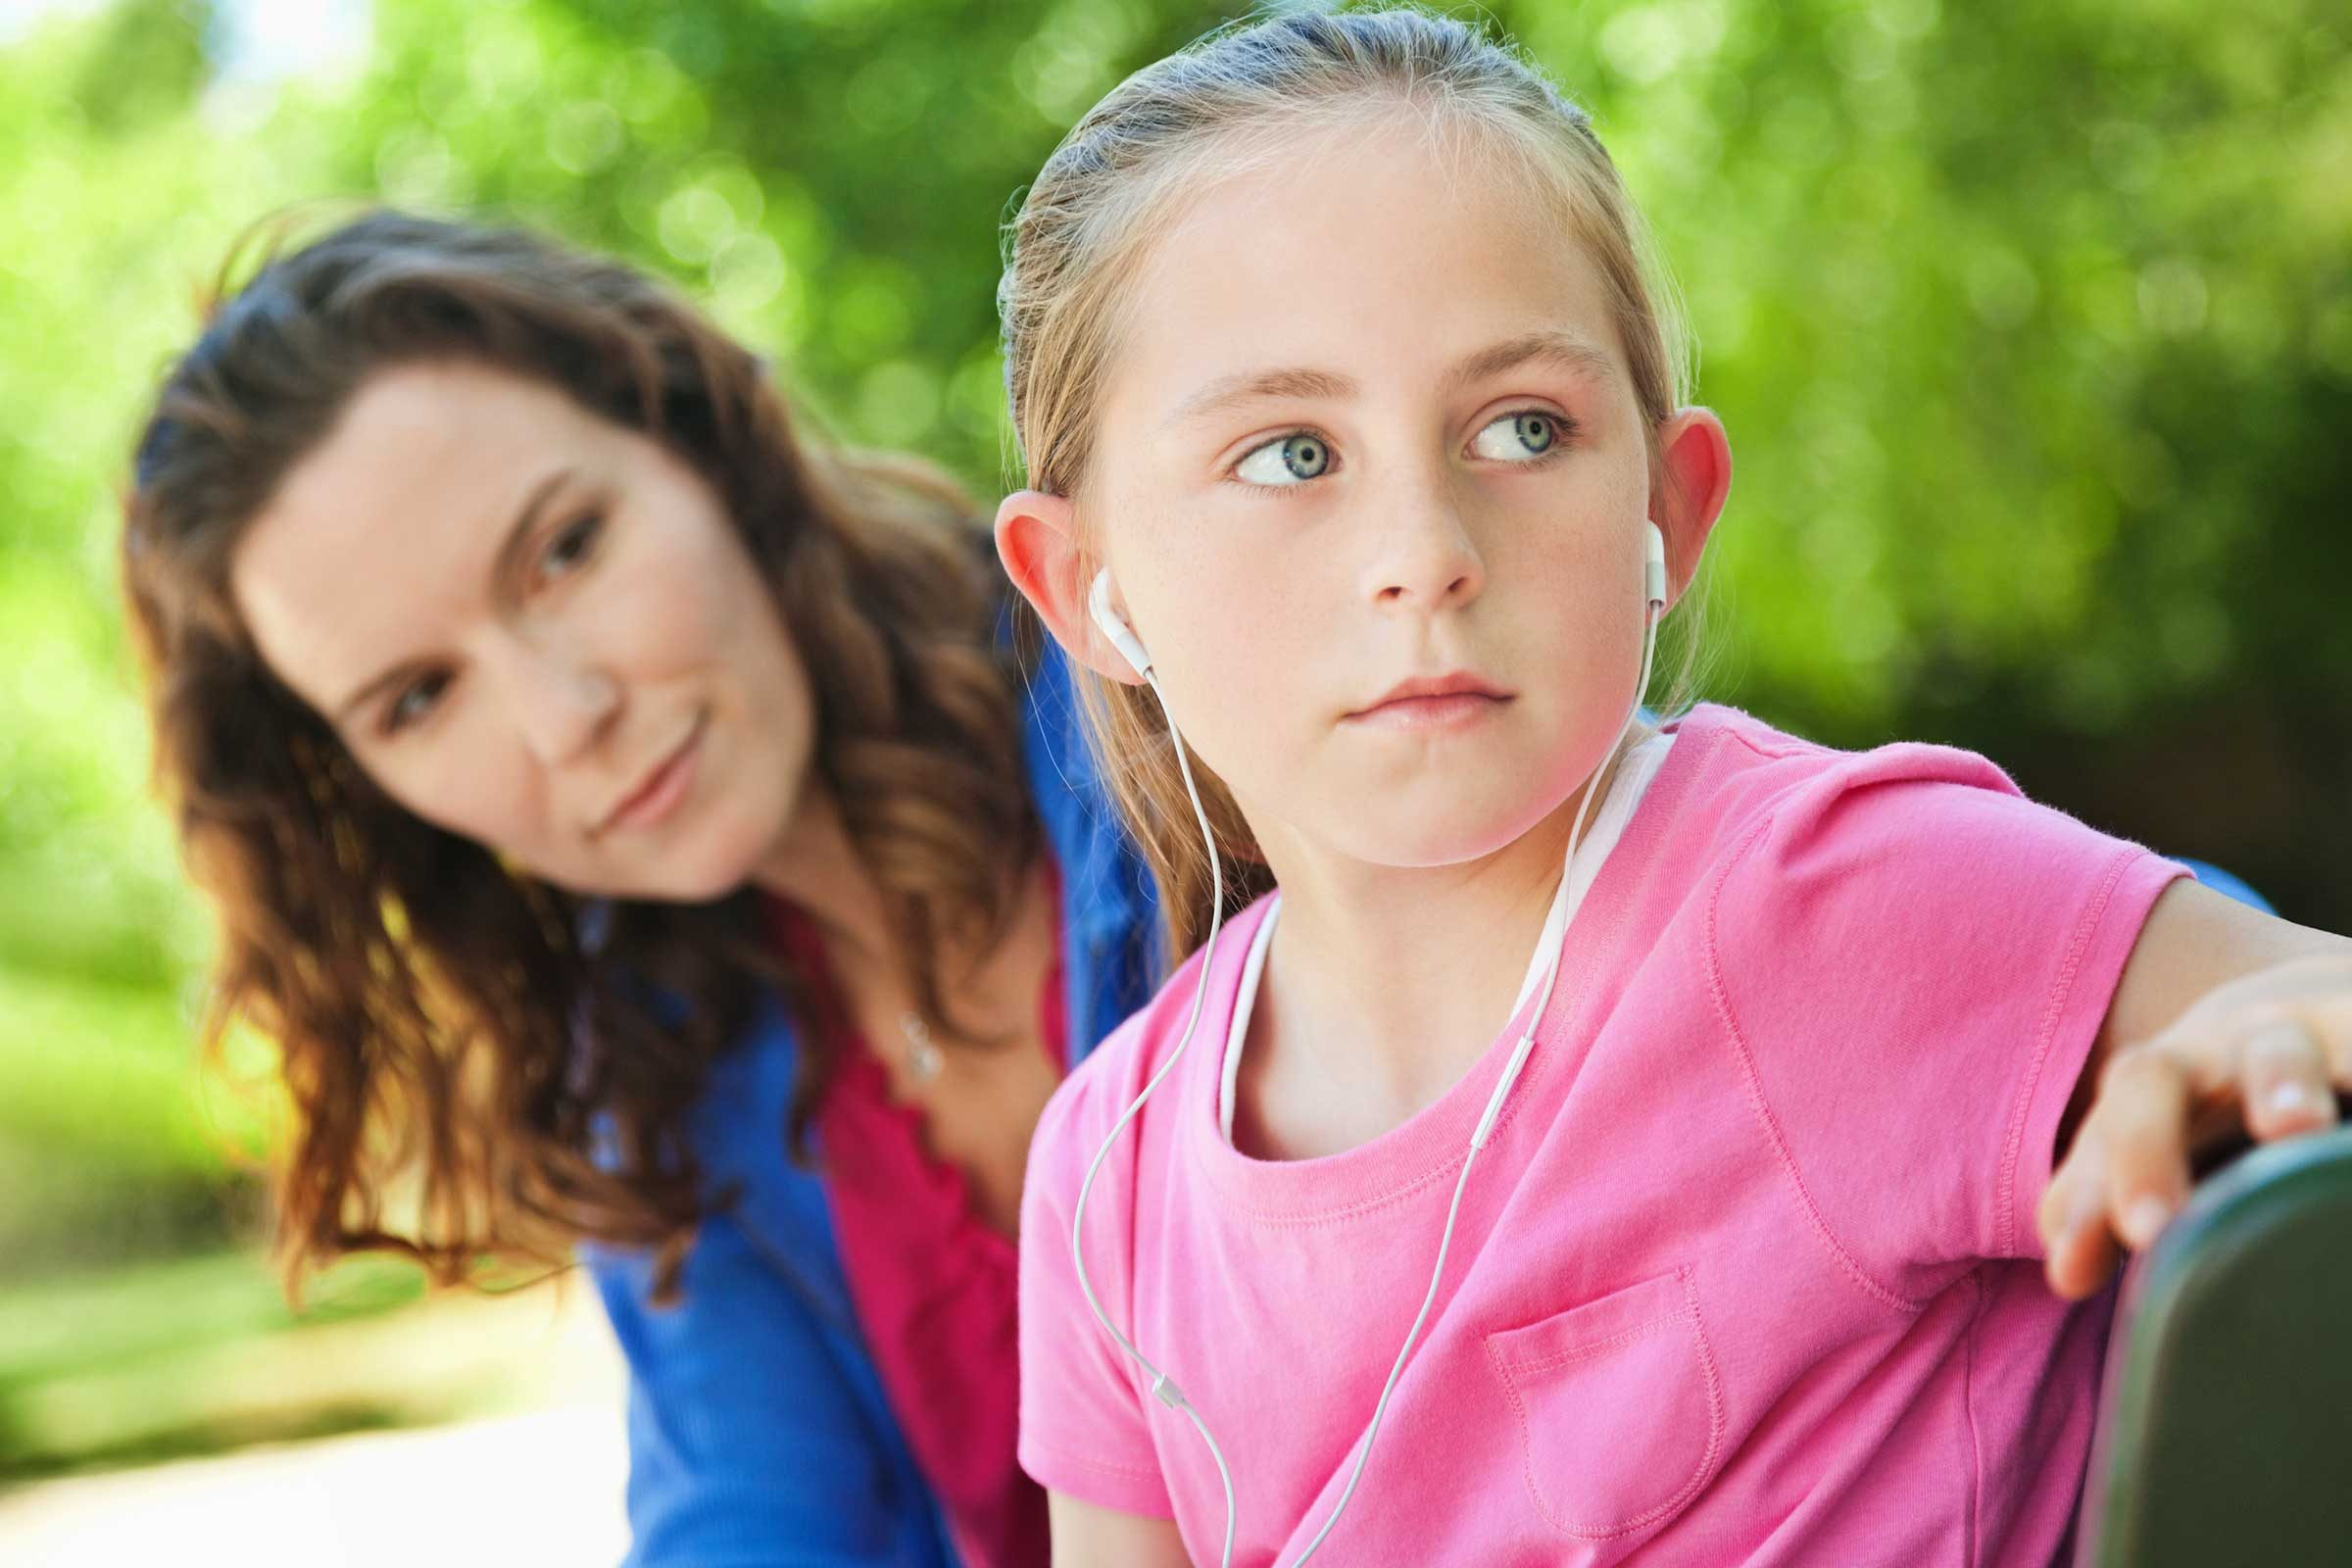 Signs Your Child Is Being Bullied: 10 Red Flags | Reader's ... Kid Getting Bullied